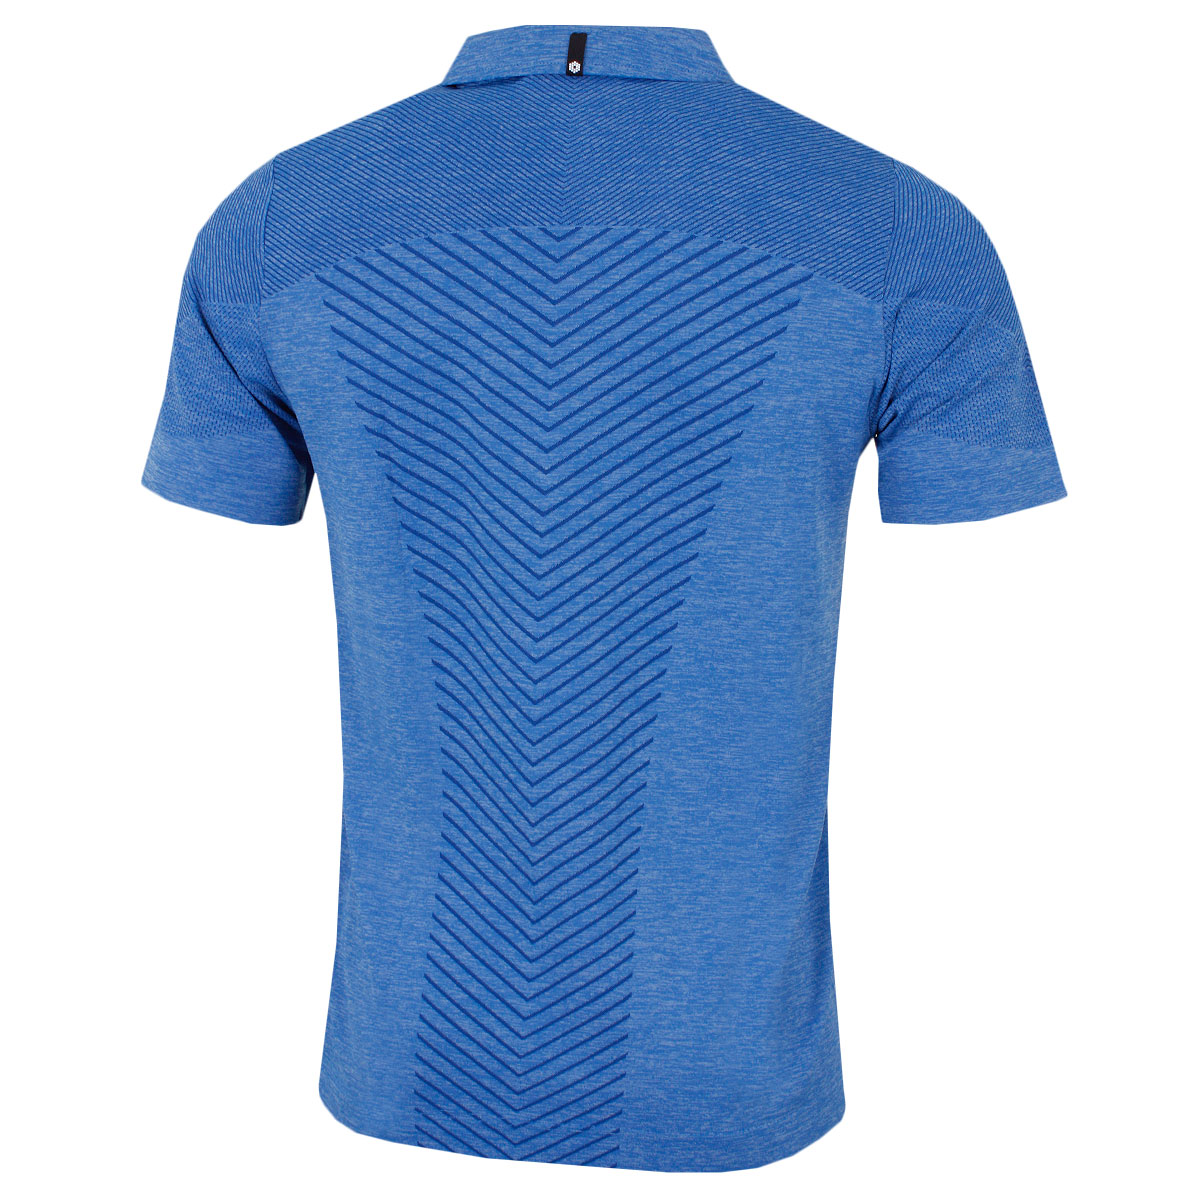 Puma-Golf-Mens-Evoknit-Seamless-DryCell-Moisture-Wicking-Polo-Shirt-46-OFF-RRP thumbnail 5